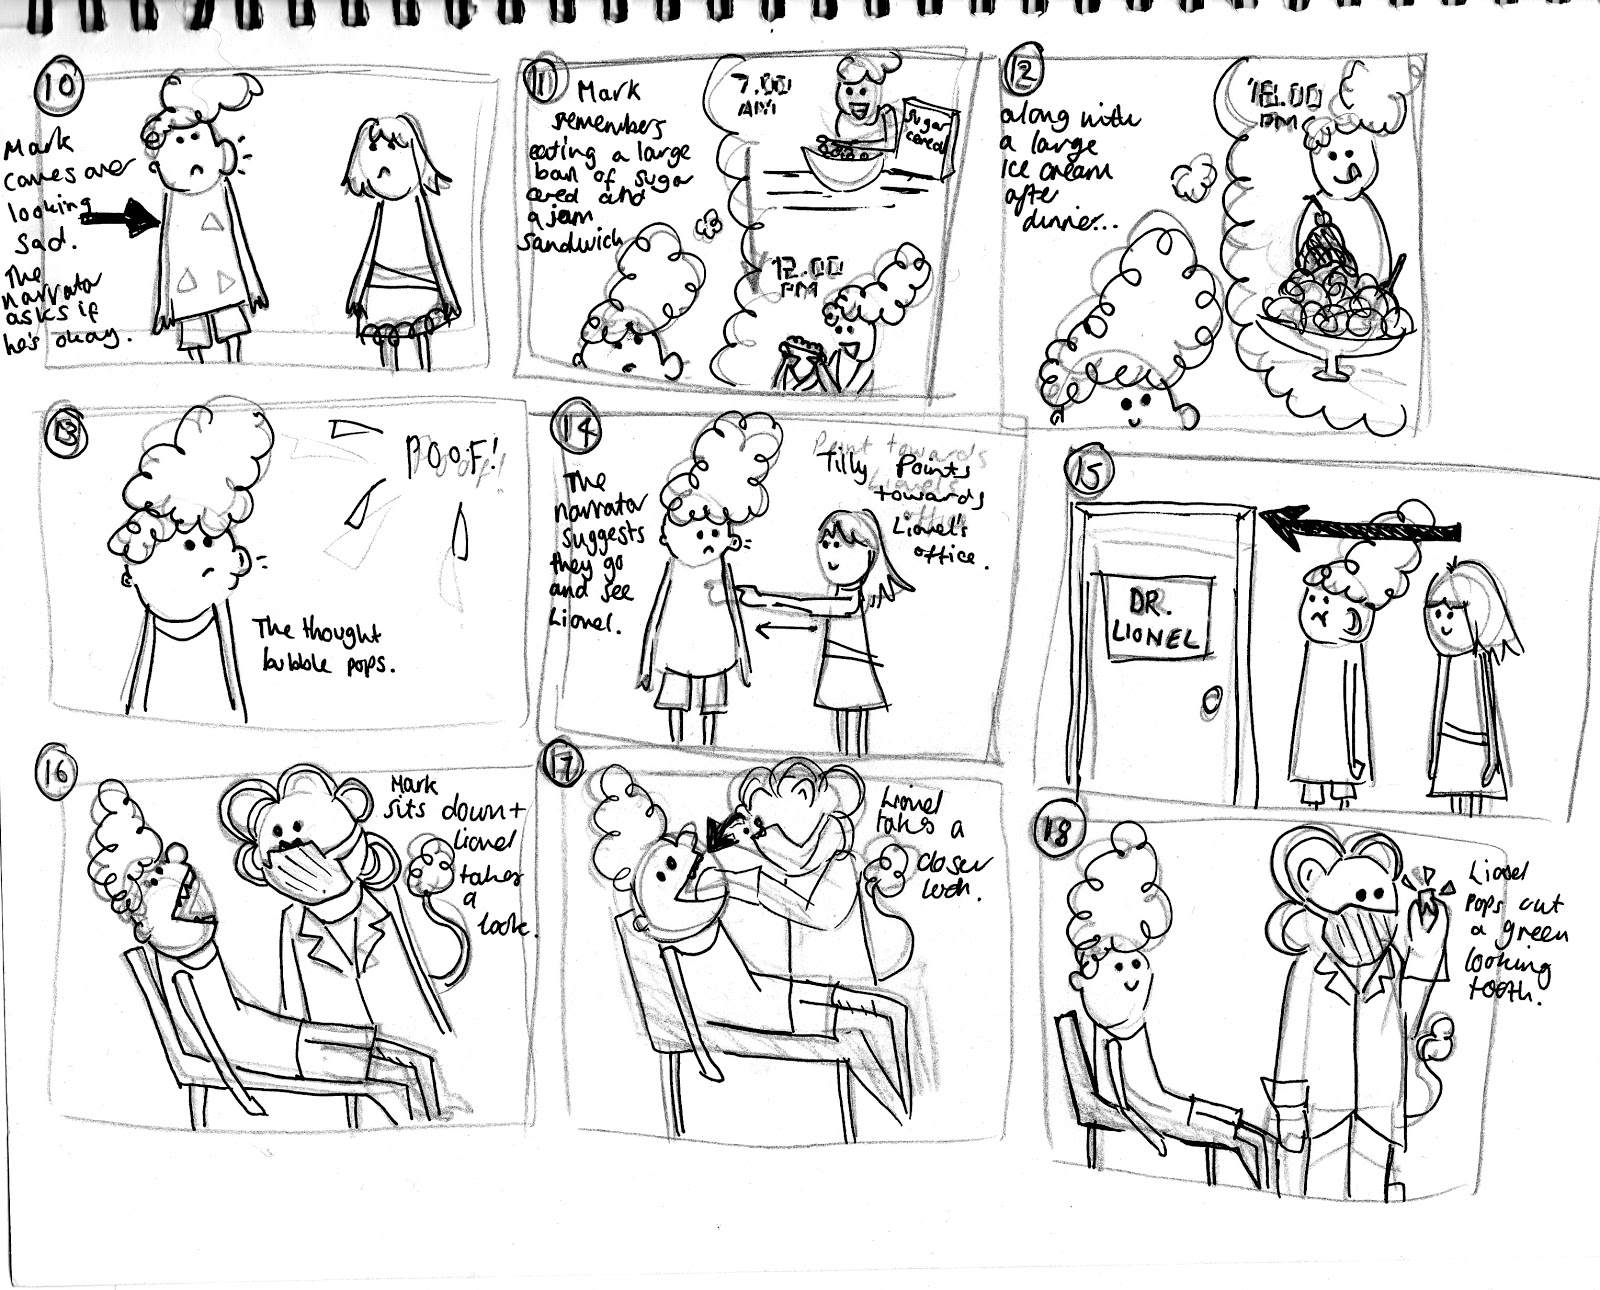 Laura S Animations Draft Storyboard Sequence And Story